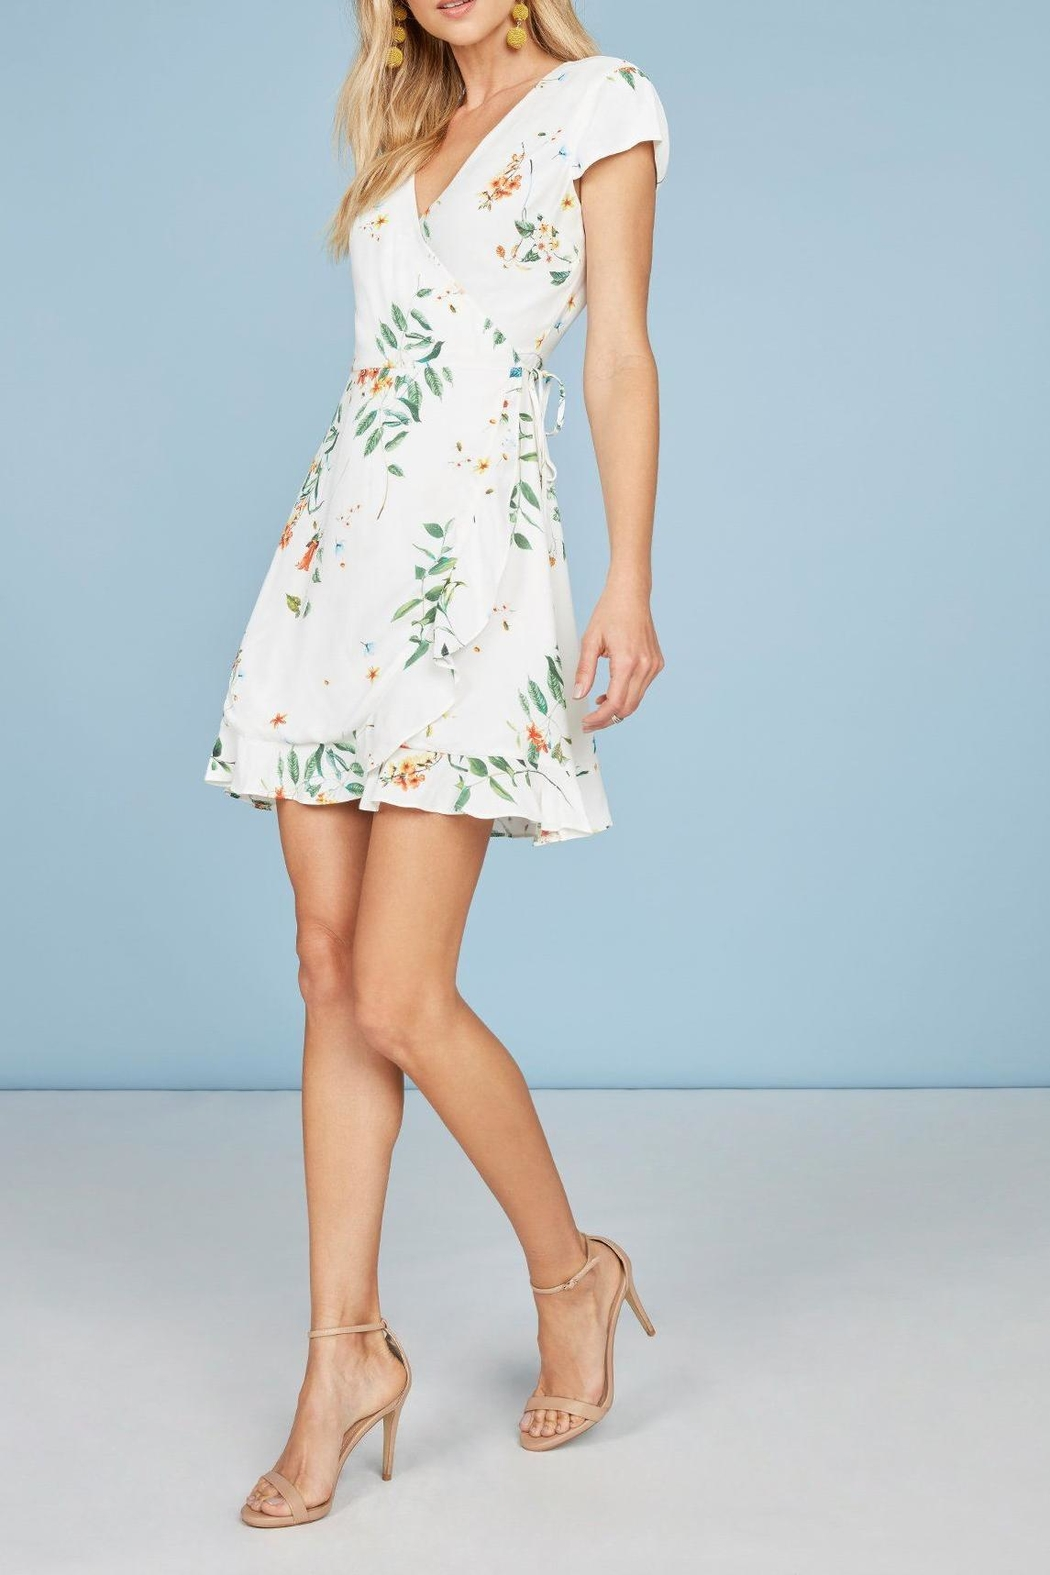 Willow & Clay Landon Floral Wrap-Dress - Main Image